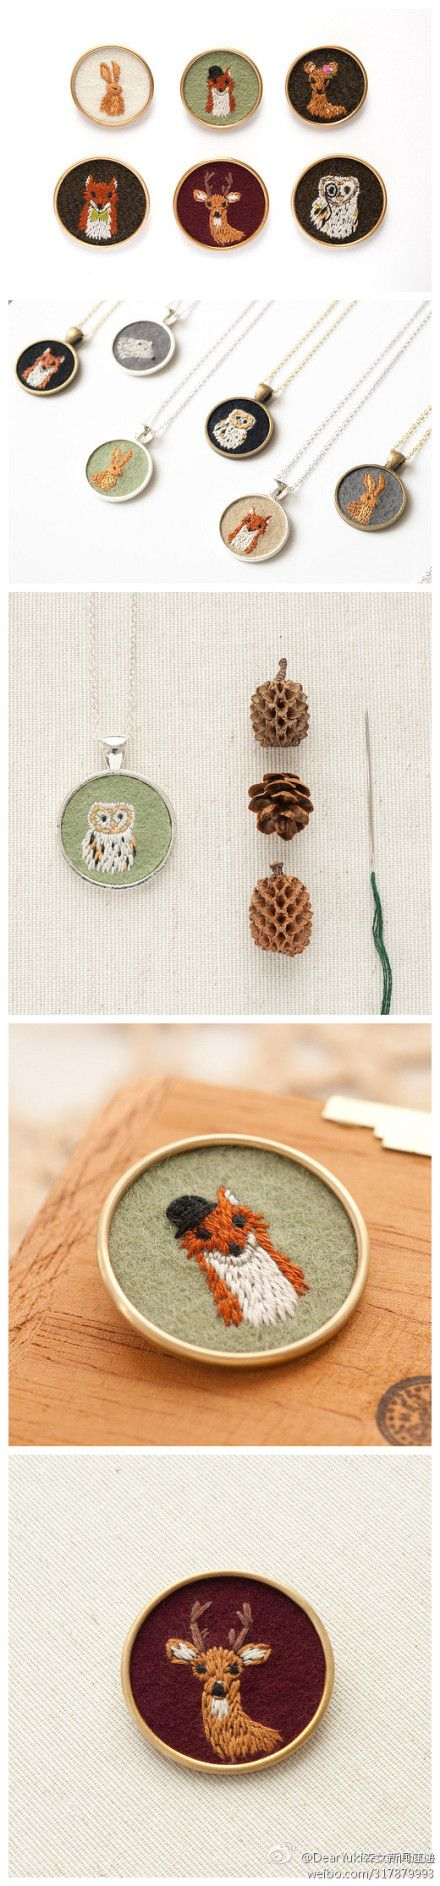 Animal Necklaces #embroidery #wow